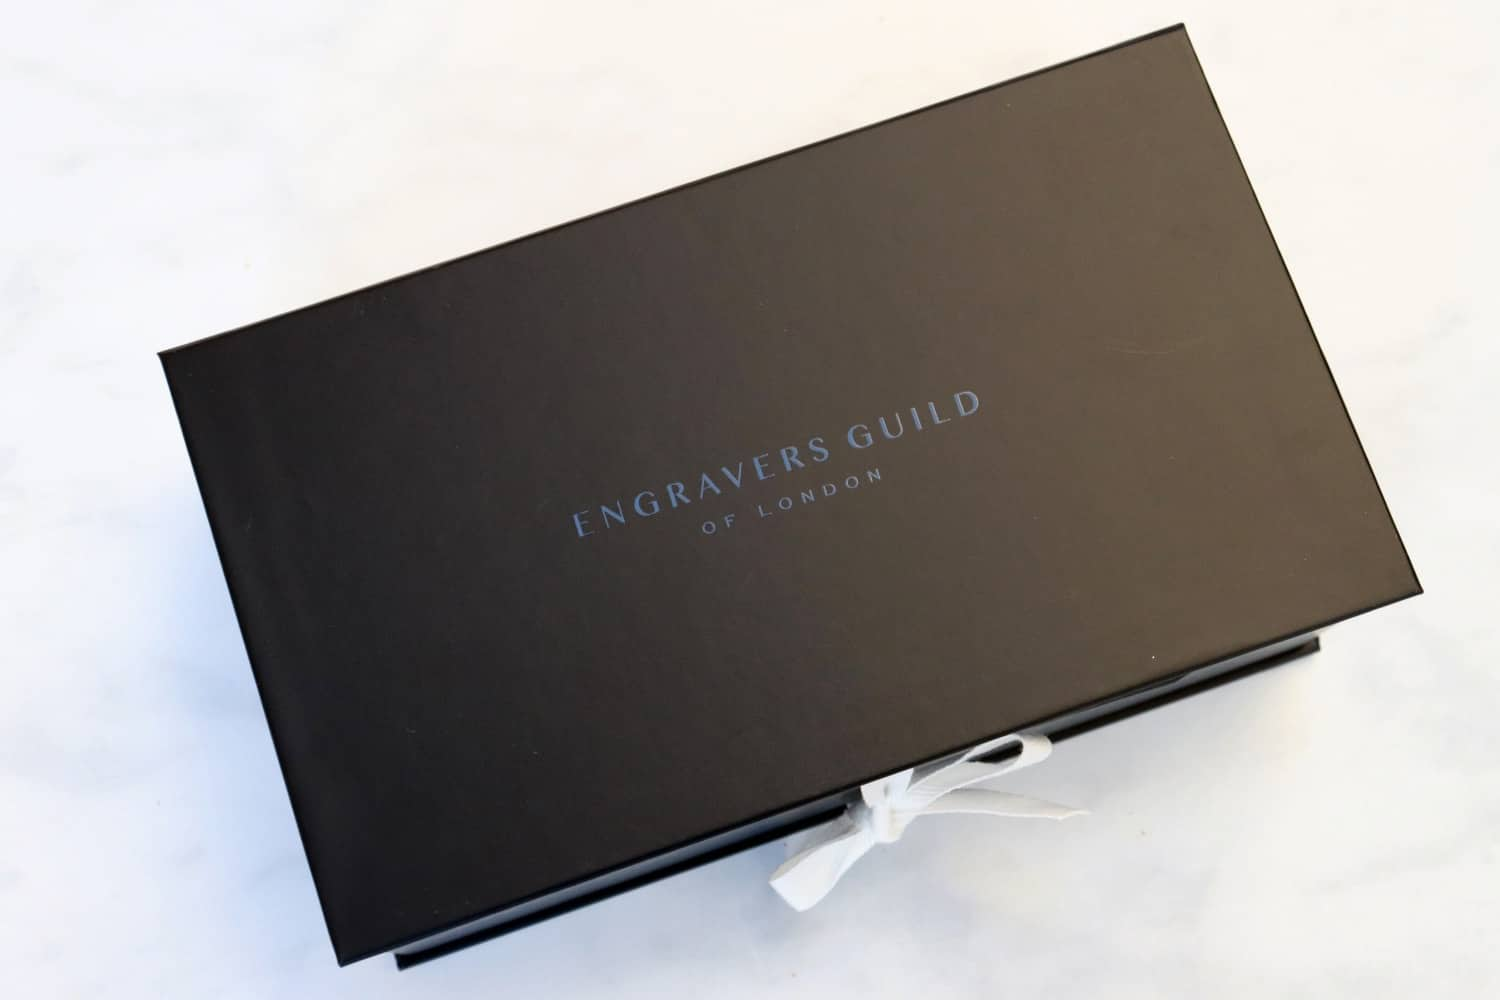 Personalised Gifts from Engravers Guild